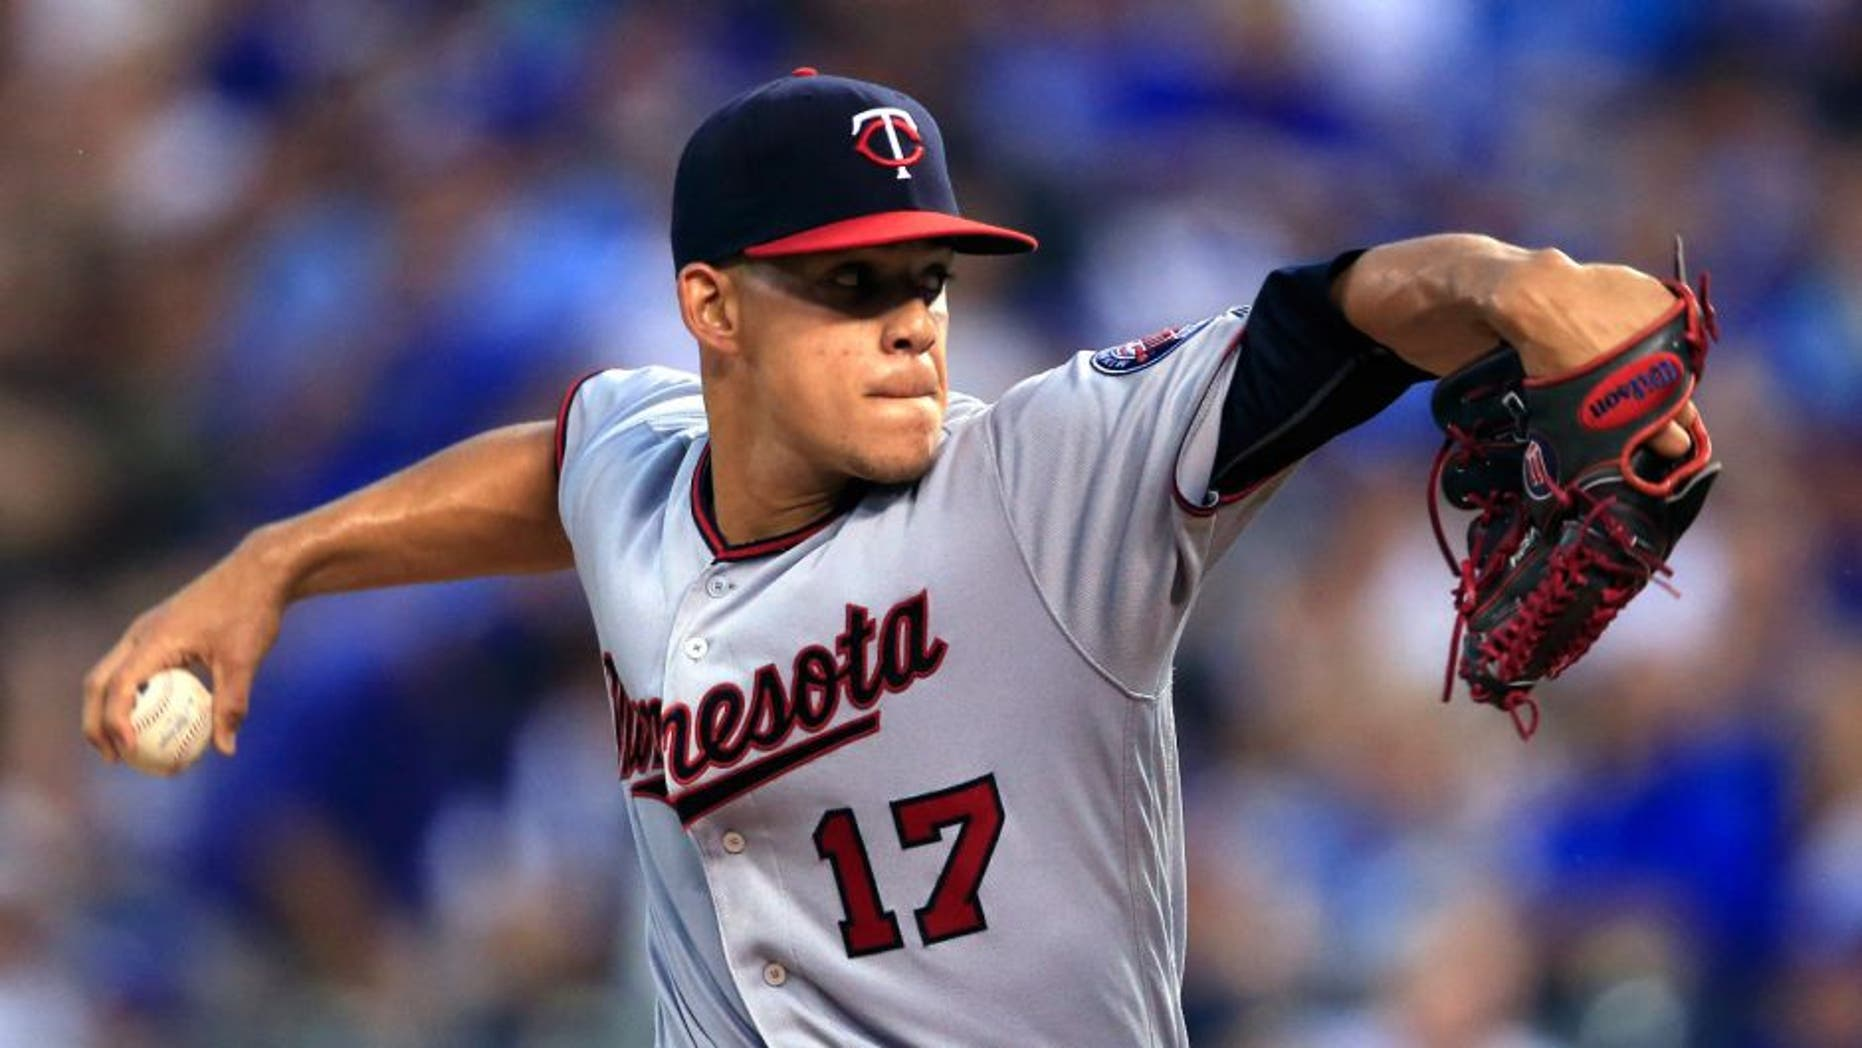 Minnesota Twins starting pitcher Jose Berrios delivers to a Kansas City Royals batter during the first inning of a baseball game at Kauffman Stadium in Kansas City, Mo., Friday, Aug. 19, 2016.